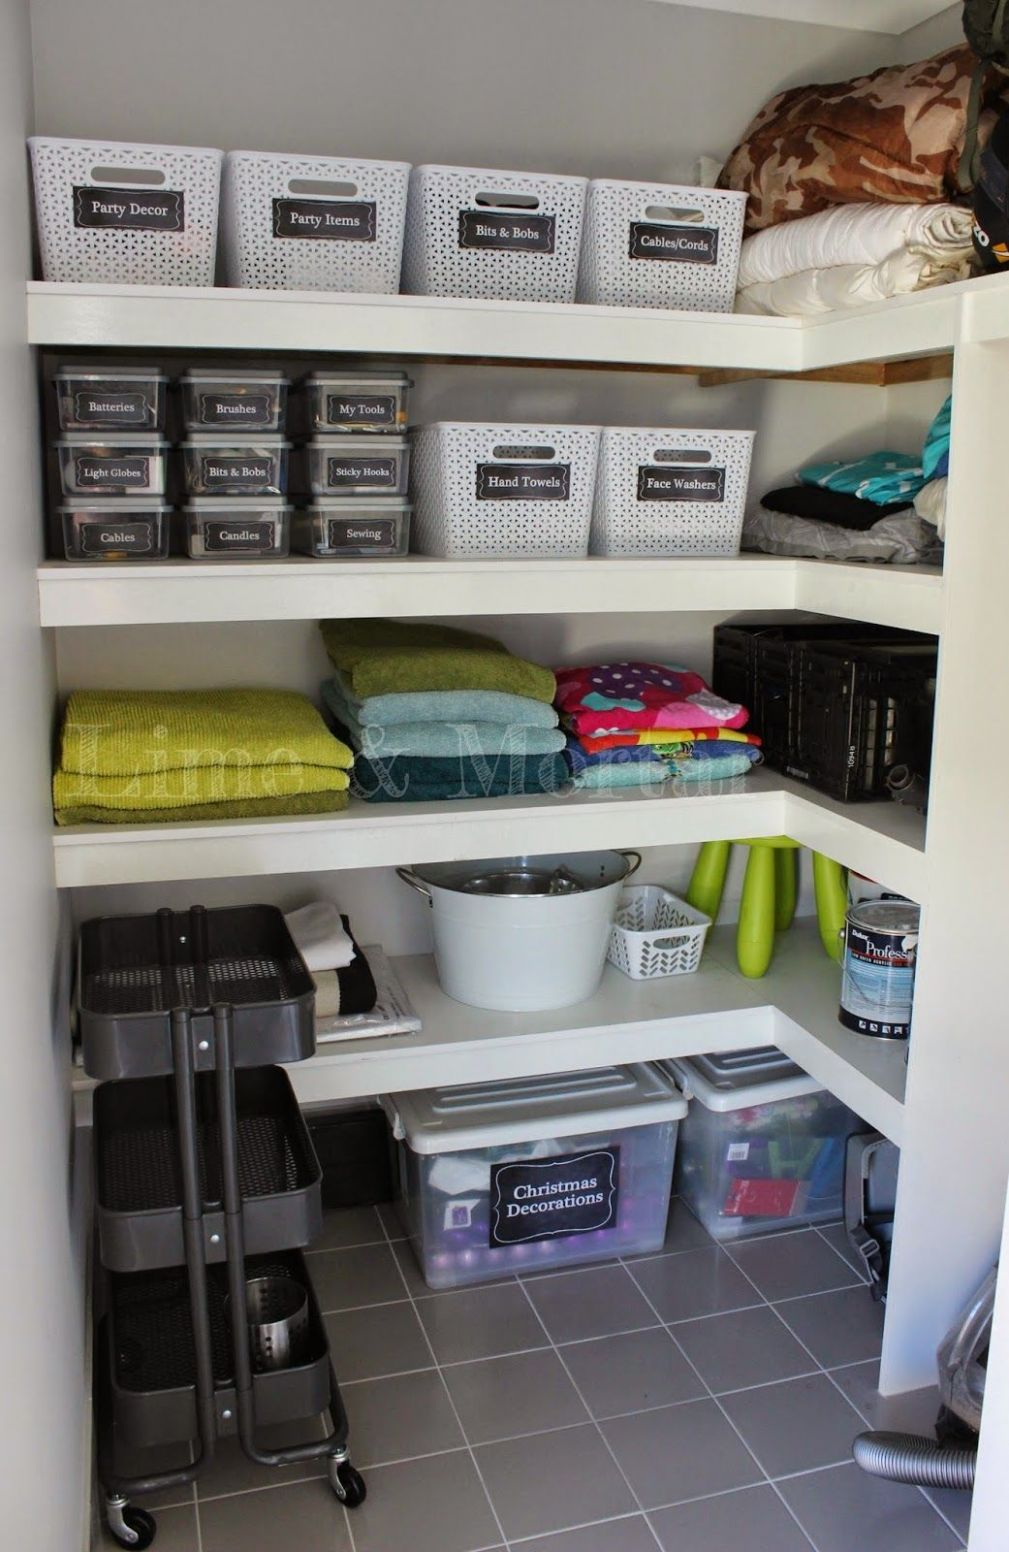 Walk-in-Linen: Theres also a section for ironing board/vacuum/mop ..